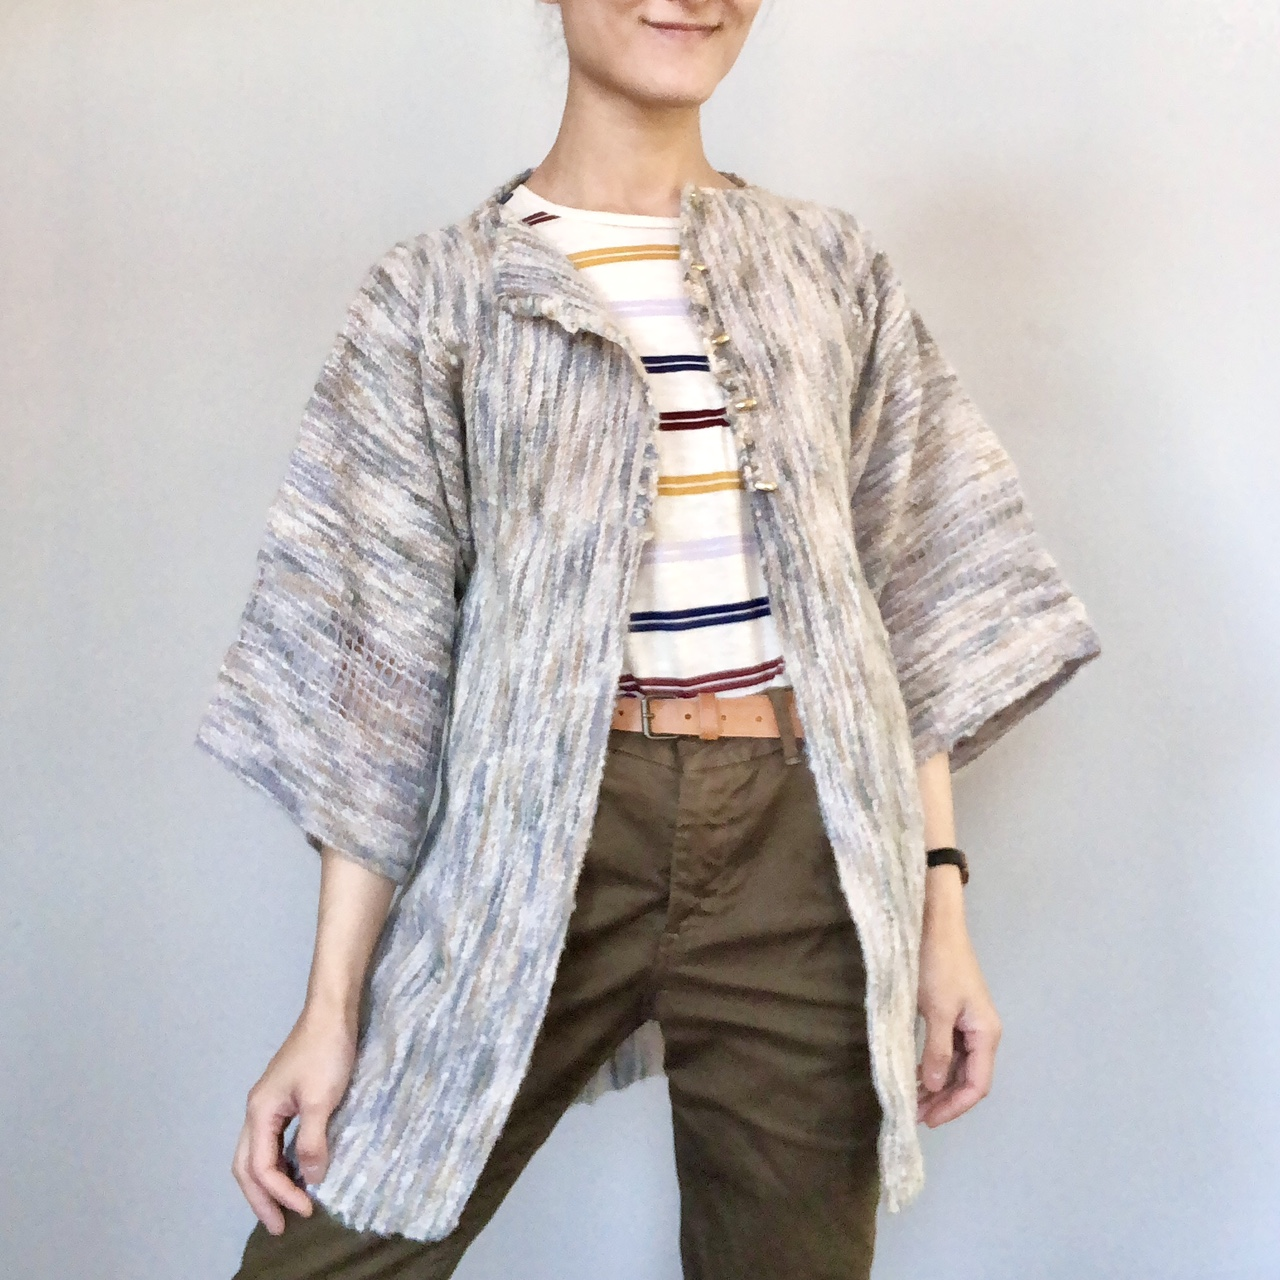 Product Image 1 - Vintage handmade textured cardigan! Can't